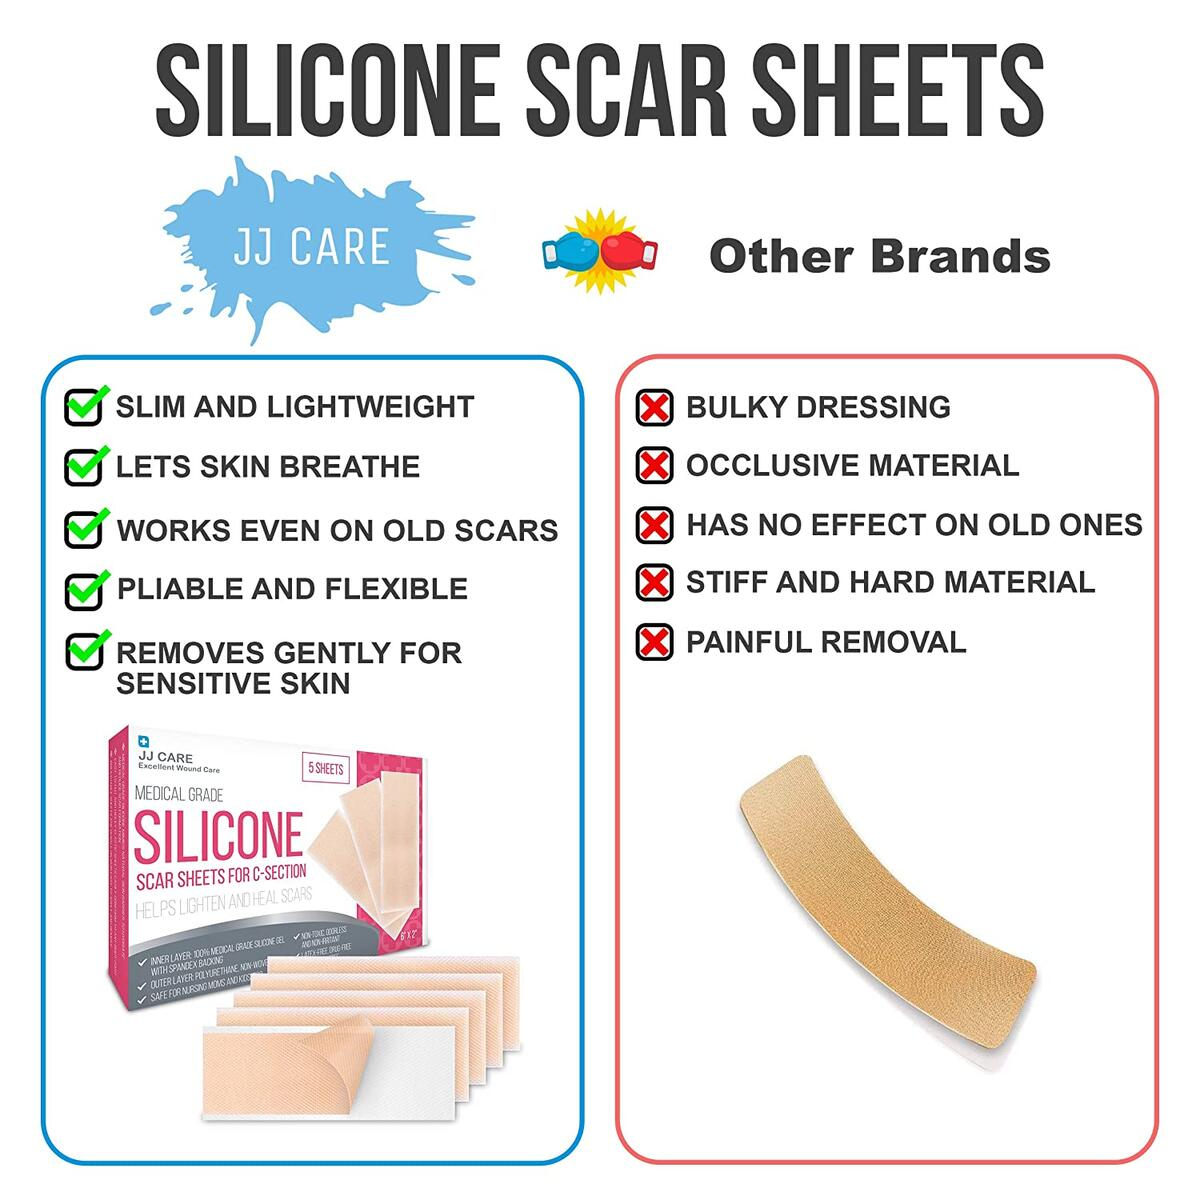 """[Box of 5] Silicone Scar Sheets for C Section (6""""x2"""") Medical Silicone Scar Removal Sheets, Reusable Silicone Patches for Scars, Keloid, Silicone Gel Sheets for Old & New Scars w/UV Protection"""